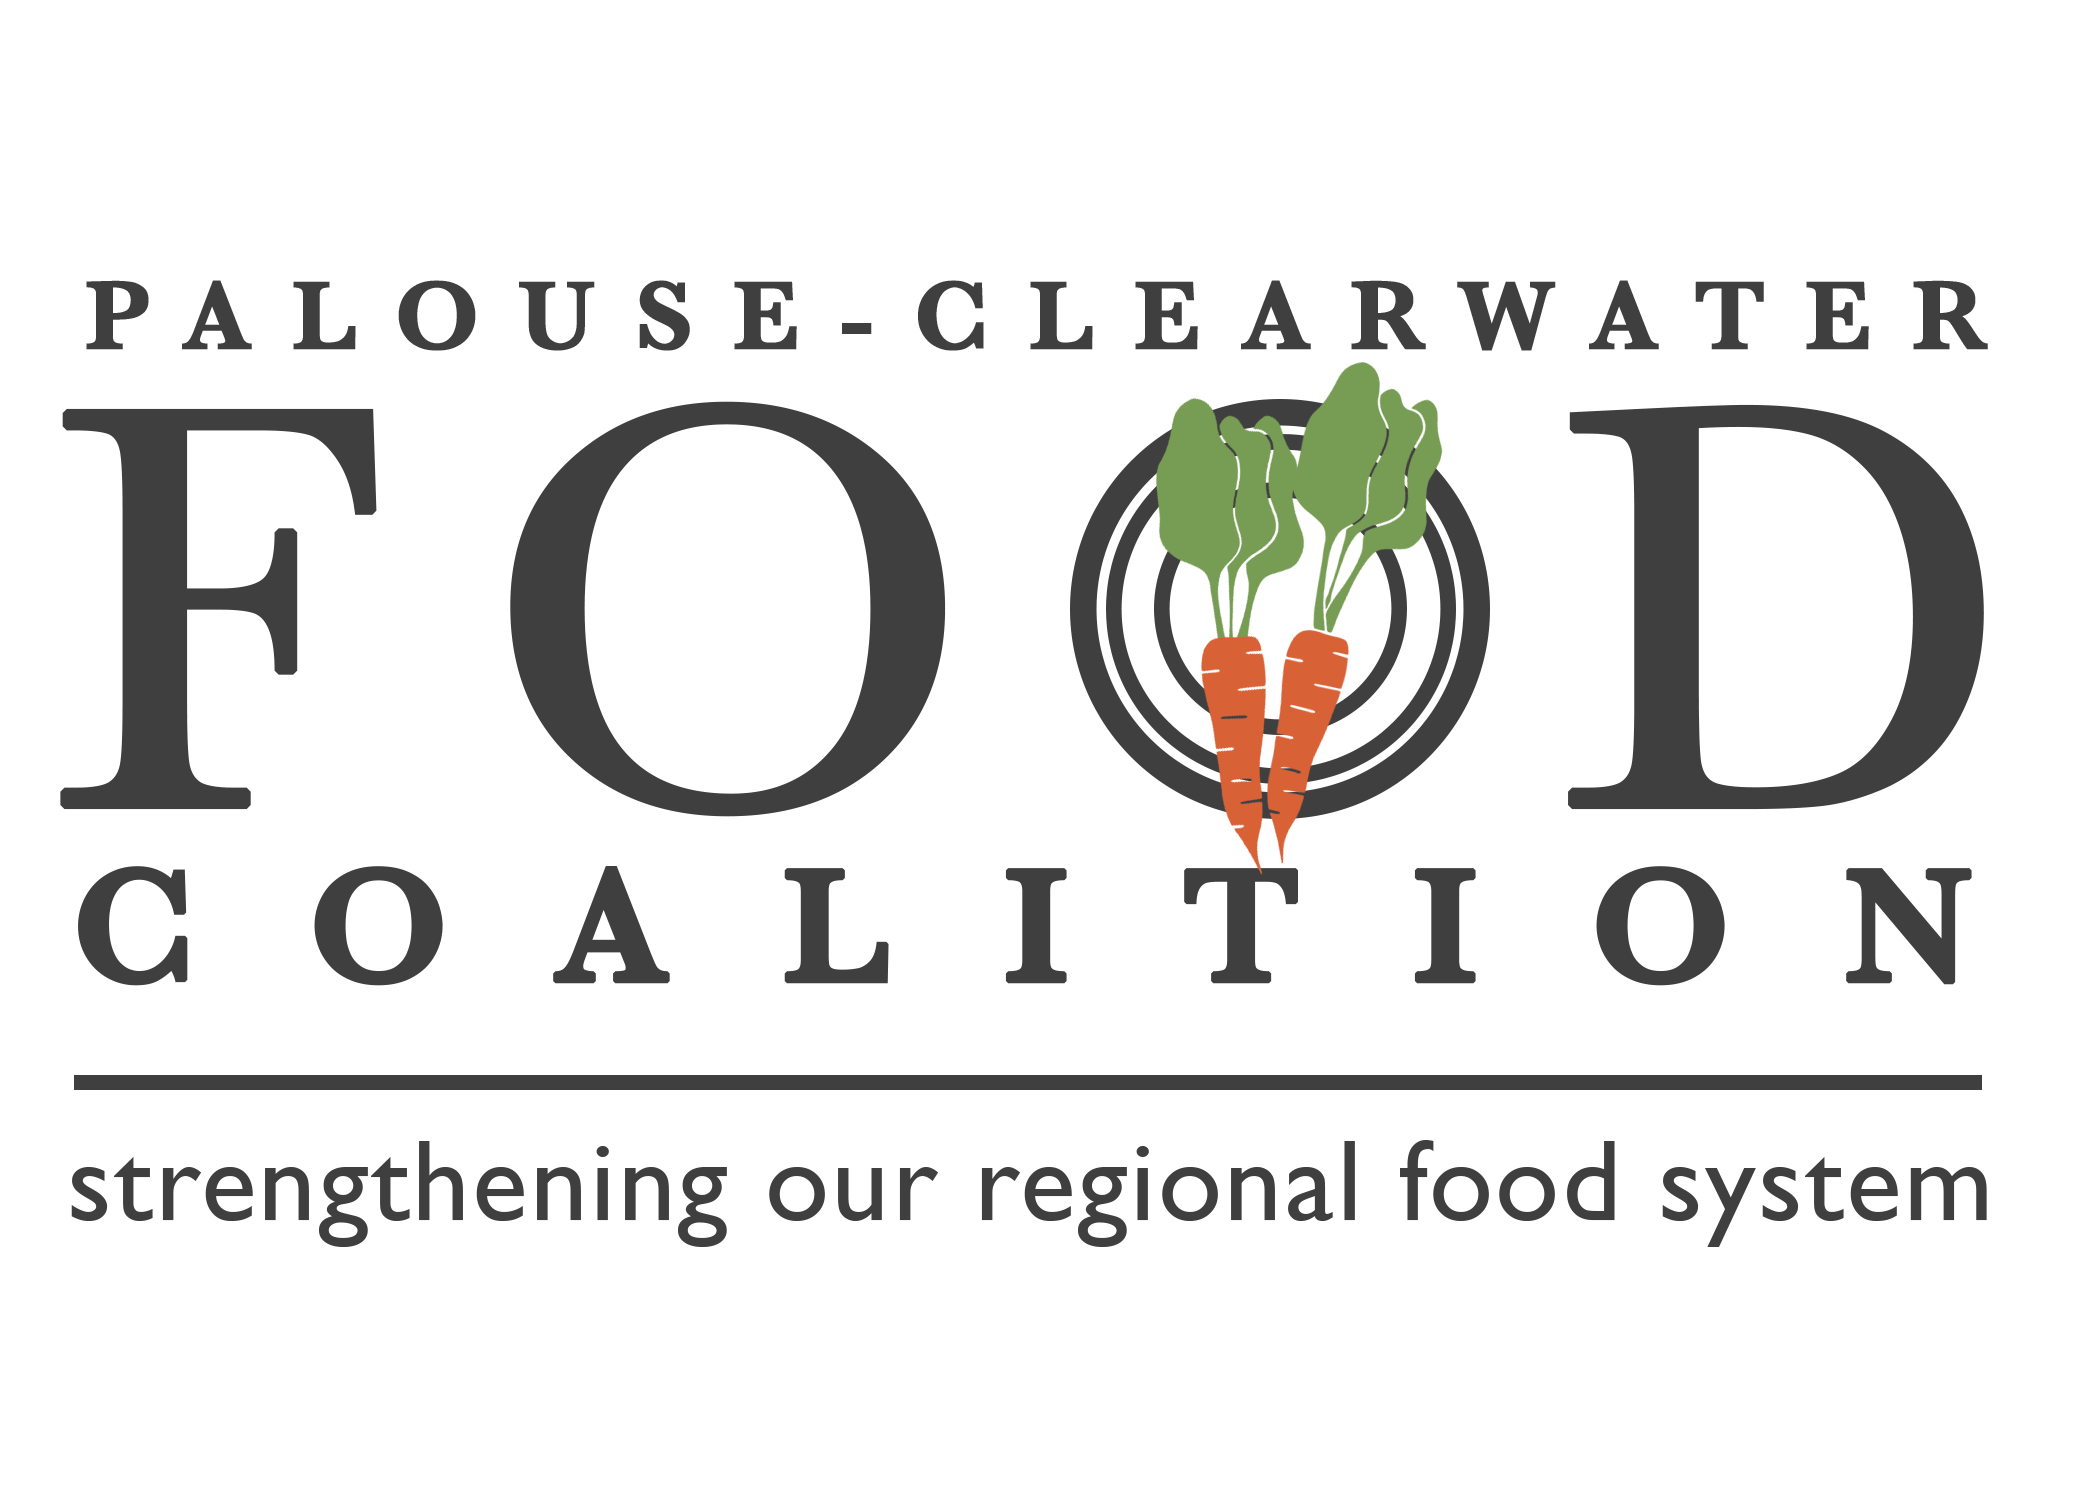 Palouse-Clearwater Food Coalition